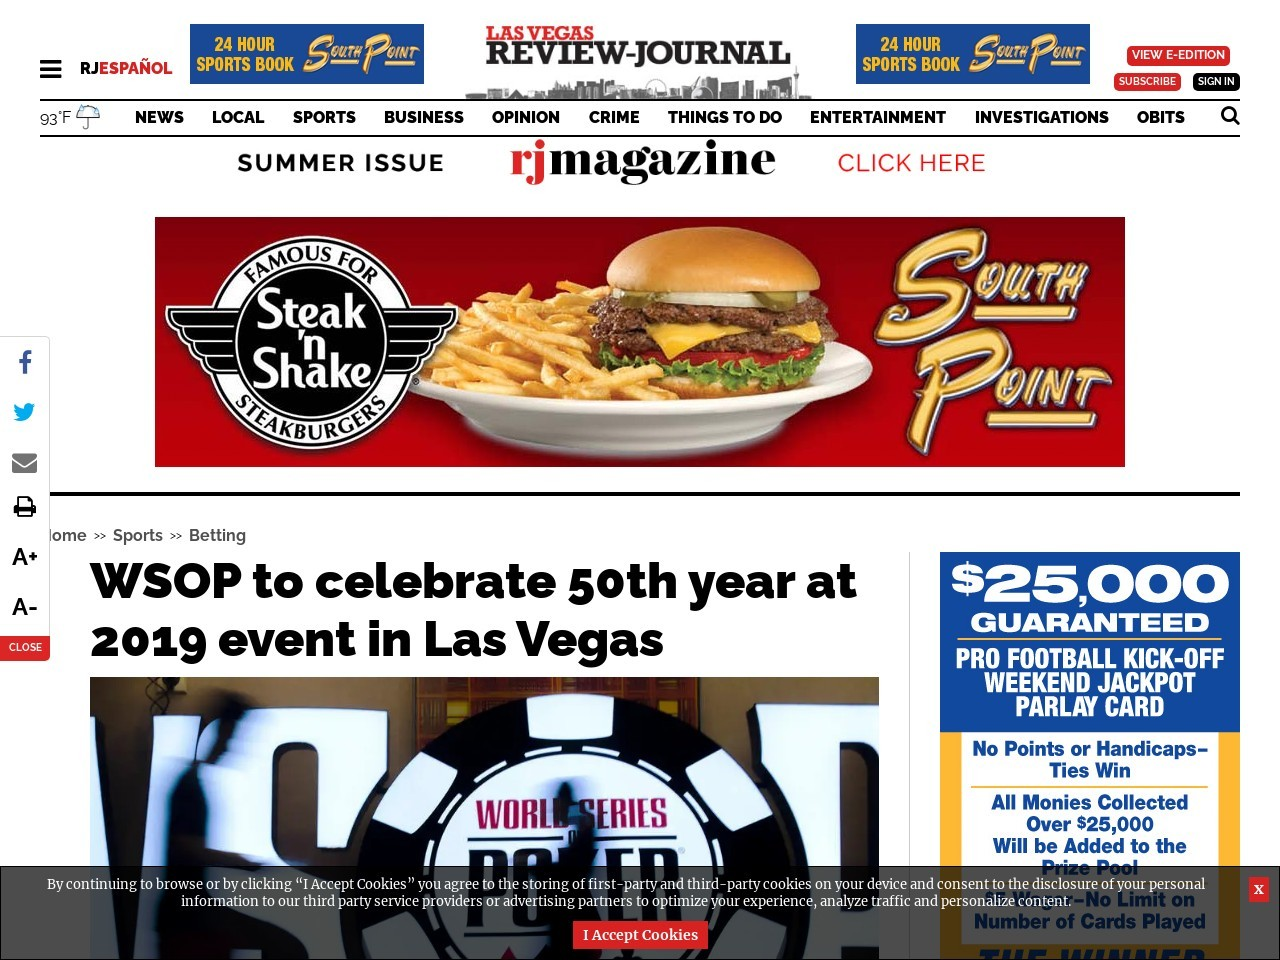 WSOP to celebrate 50th year at 2019 event in Las Vegas